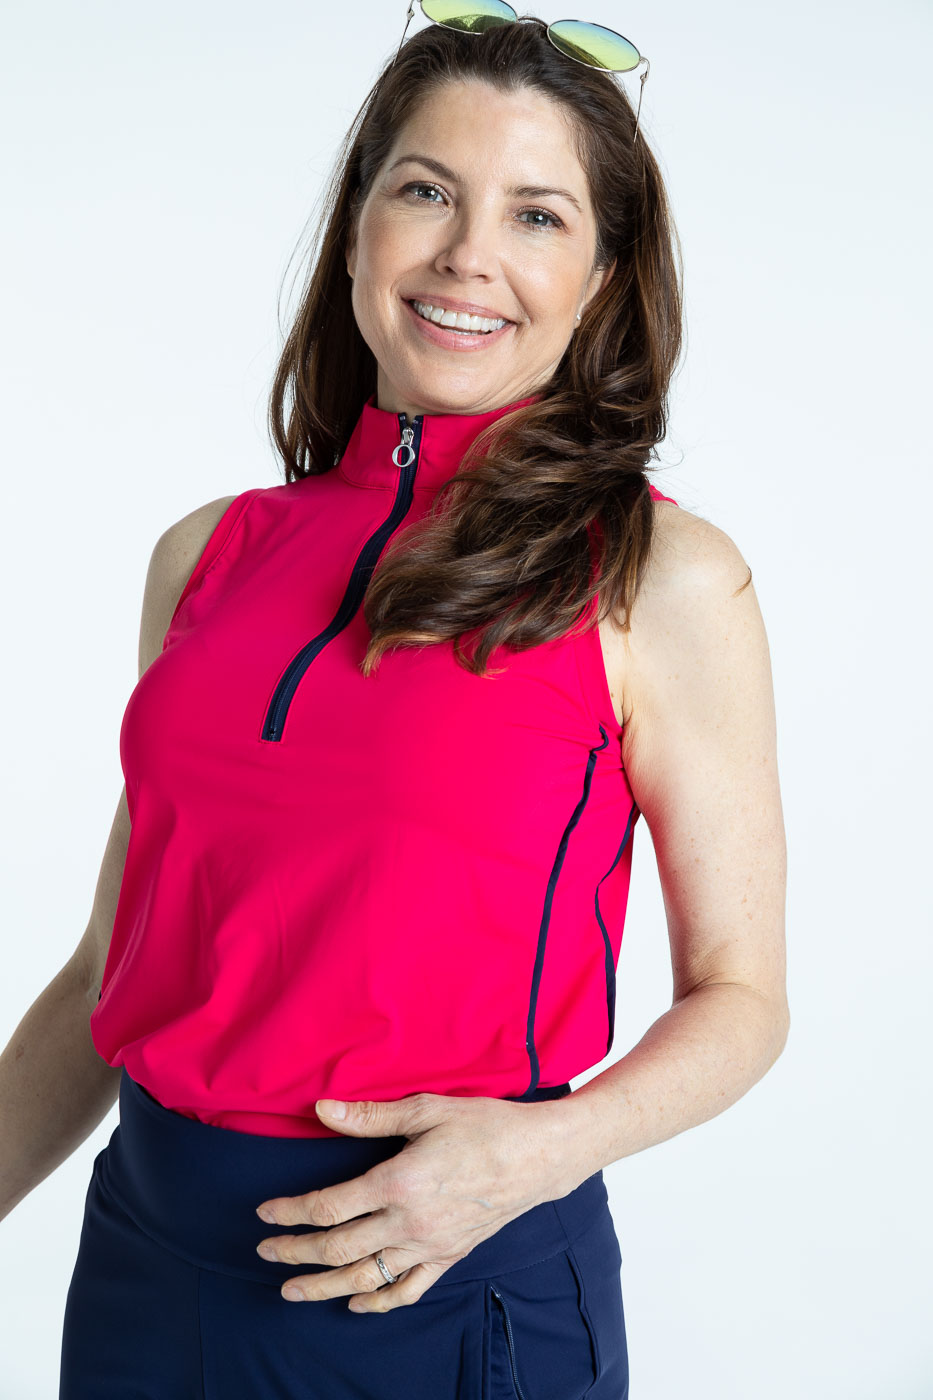 Smiling woman golfer in raspberry red Keep it Covered sleeveless golf top